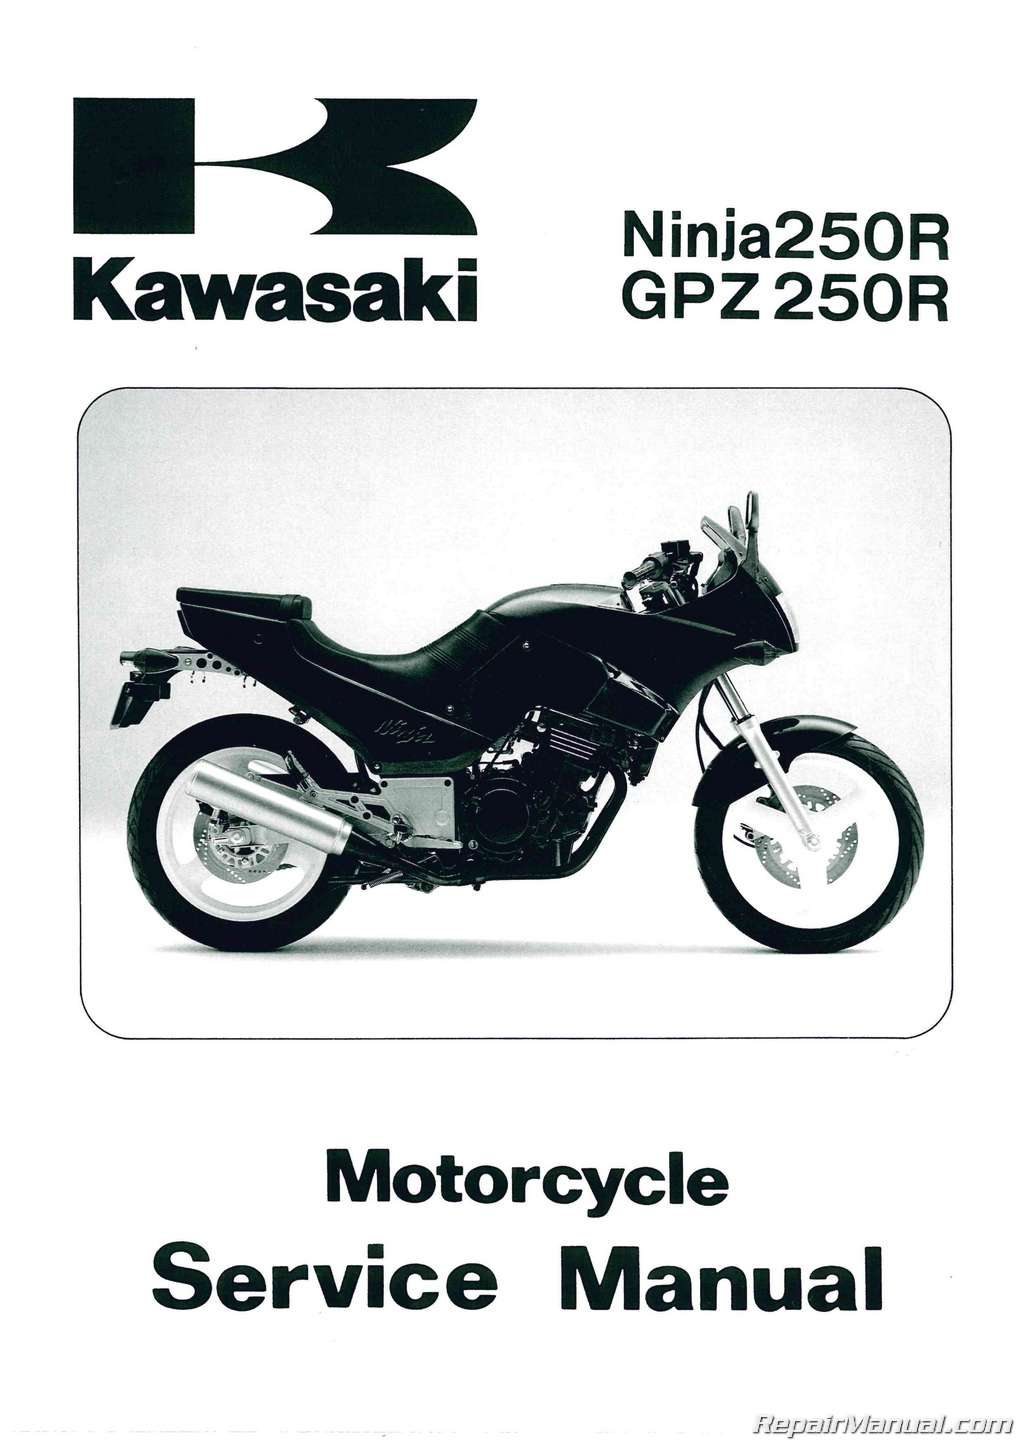 1986-1987 Kawasaki EX250 Ninja EL250 Motorcycle Eliminator Service Manual